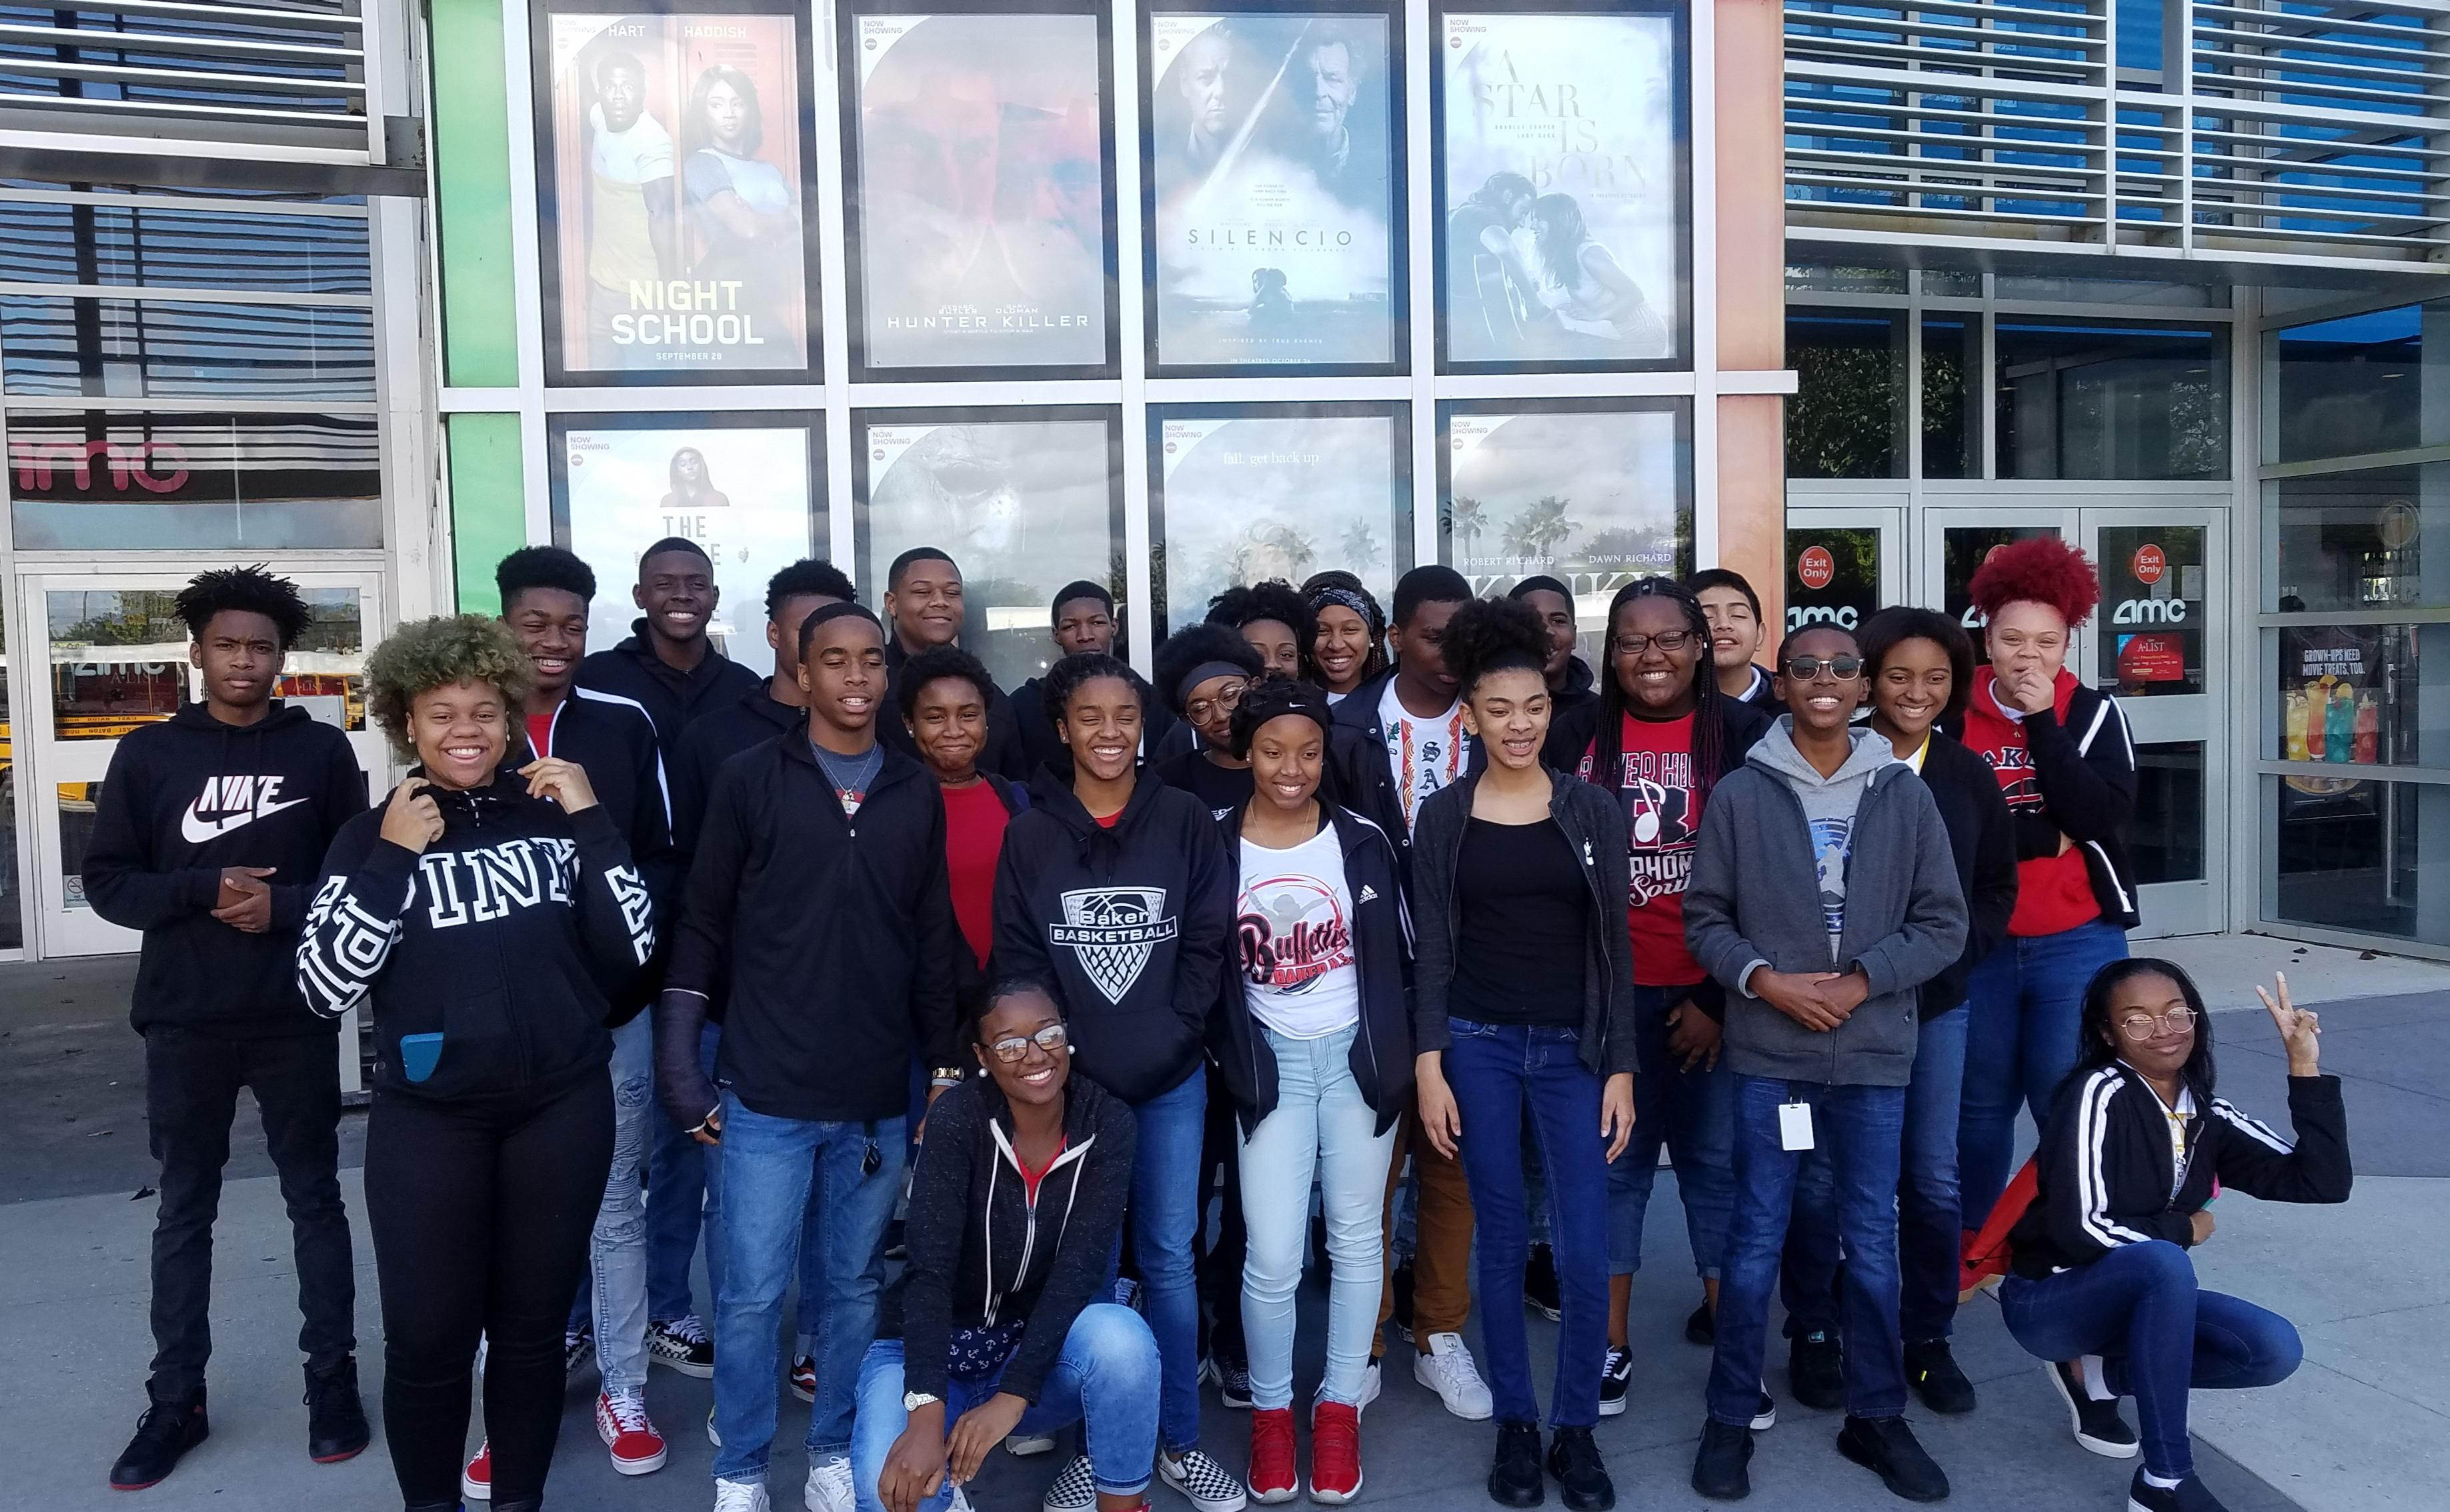 a group photo of Baker High 9th graders in front of AMC Theaters on school field trip to see movie